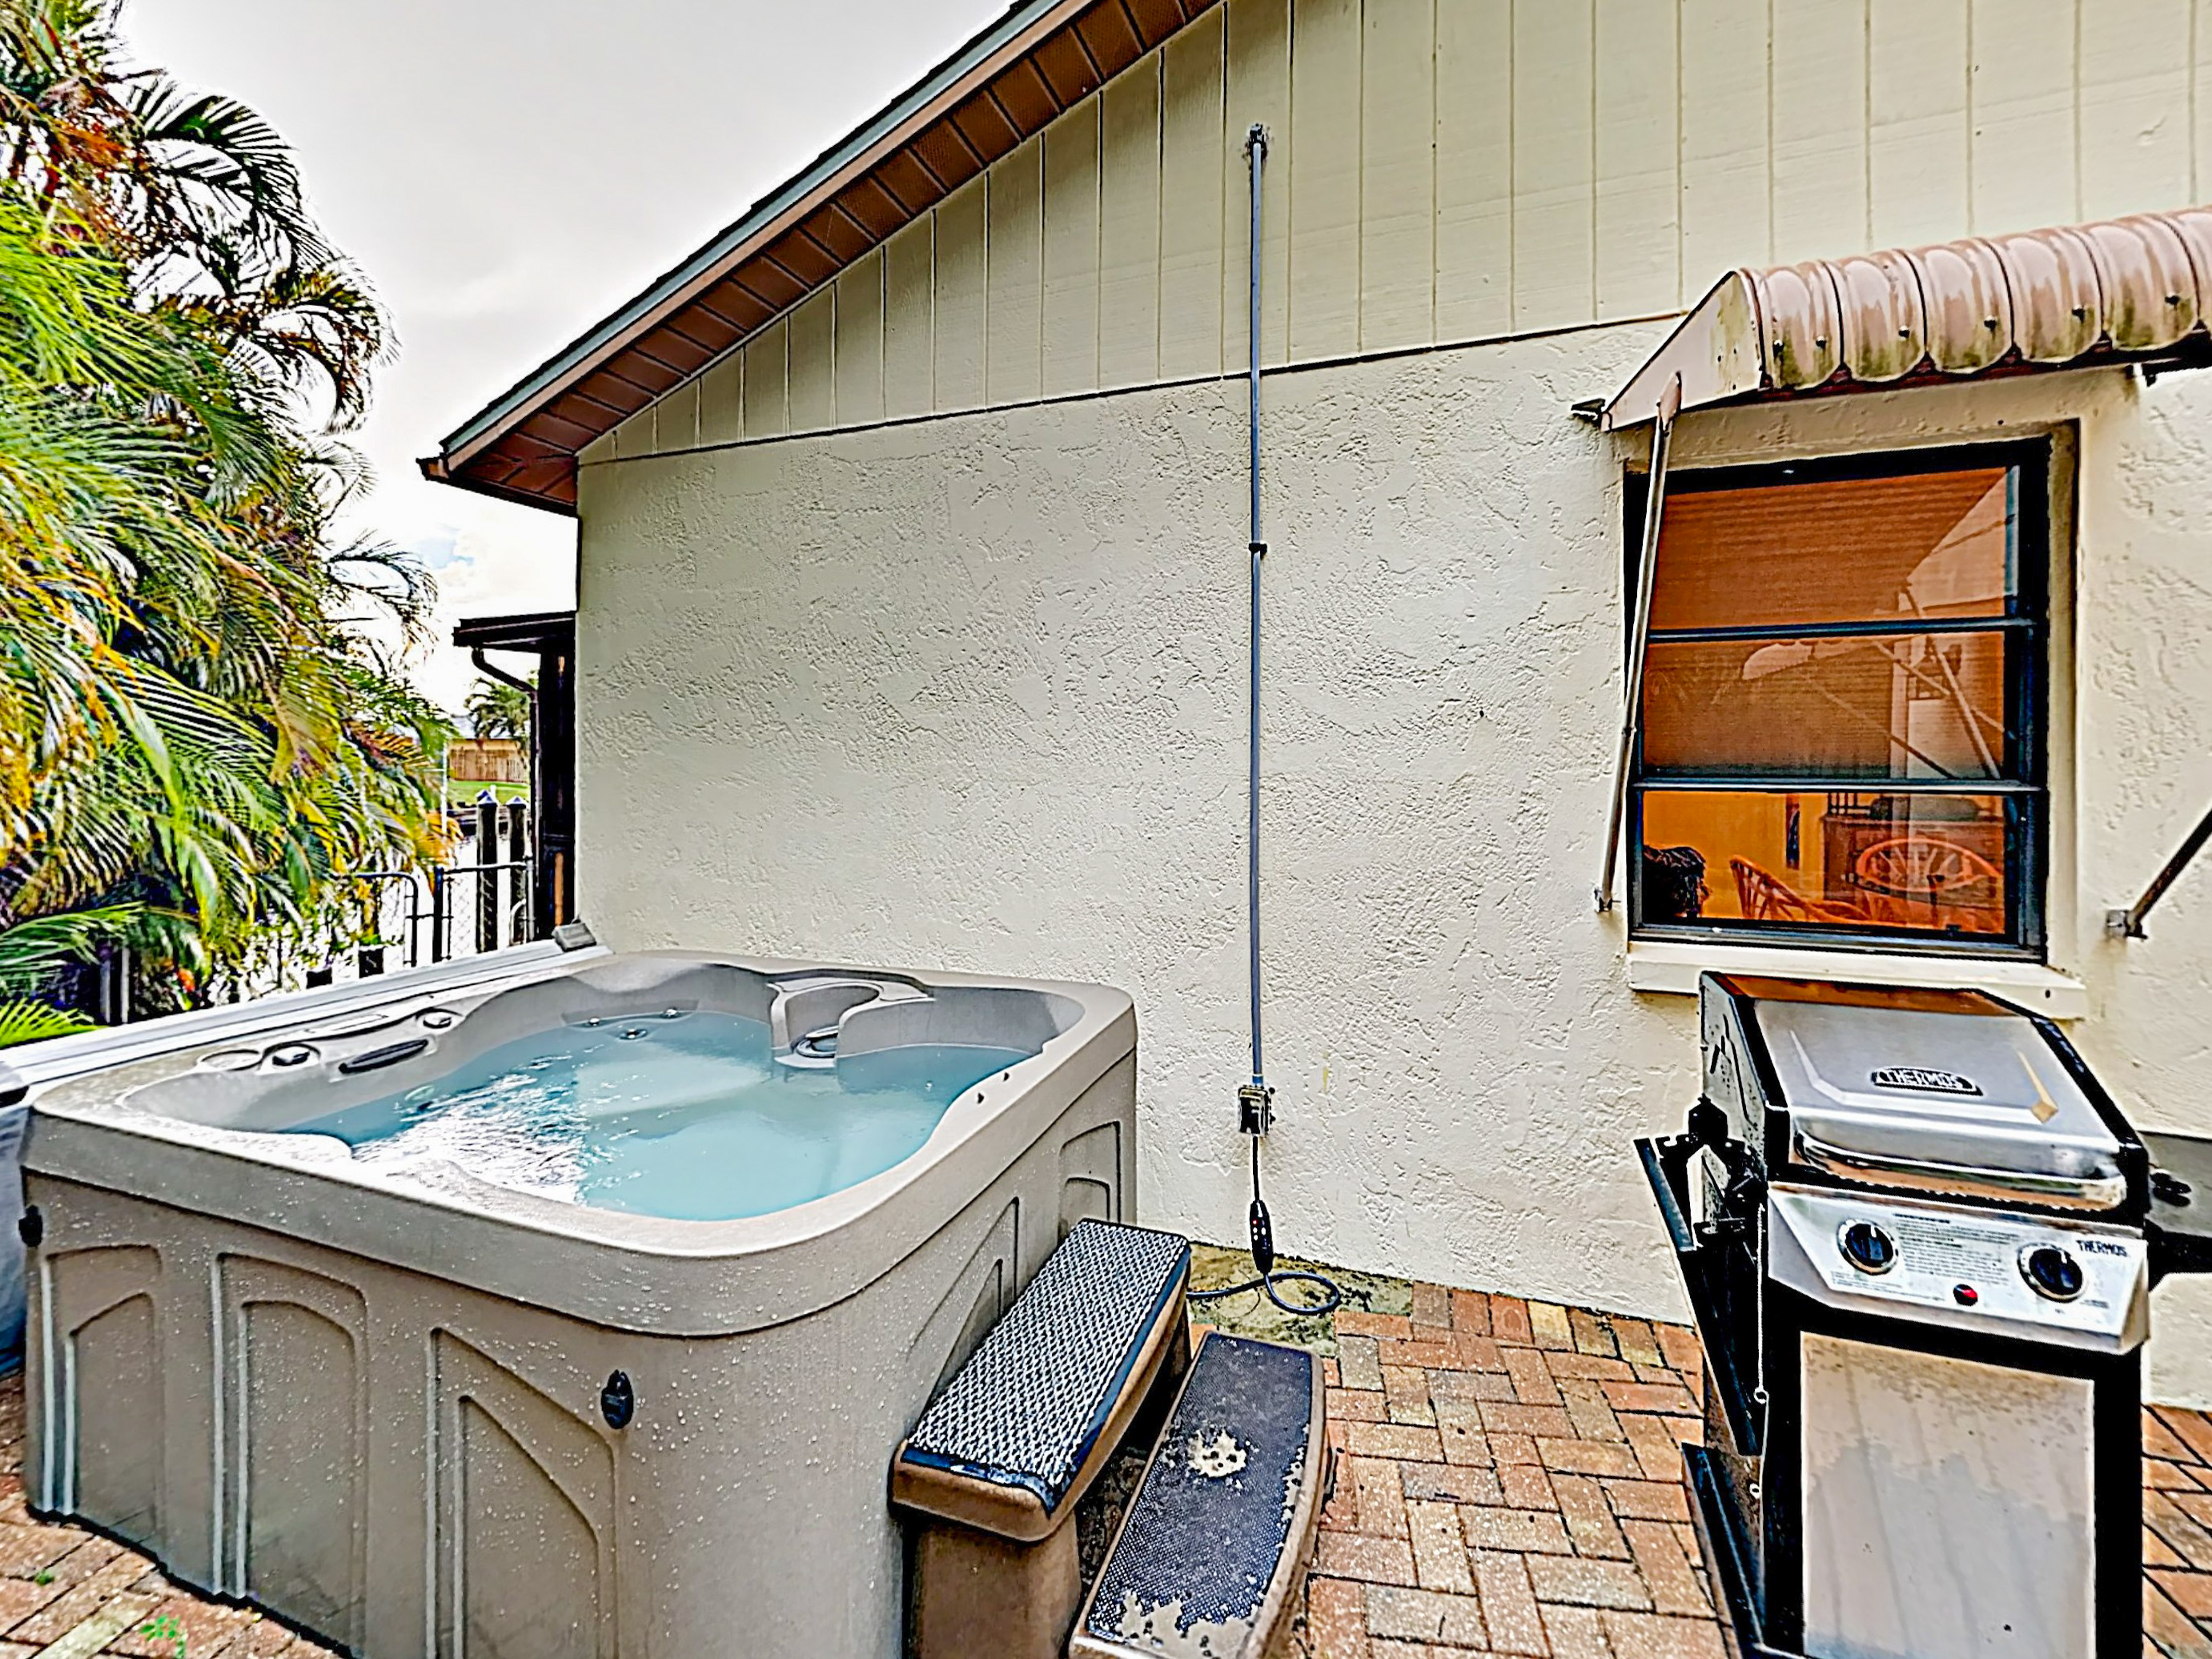 North Fort Myers FL Vacation Rental Soak in the